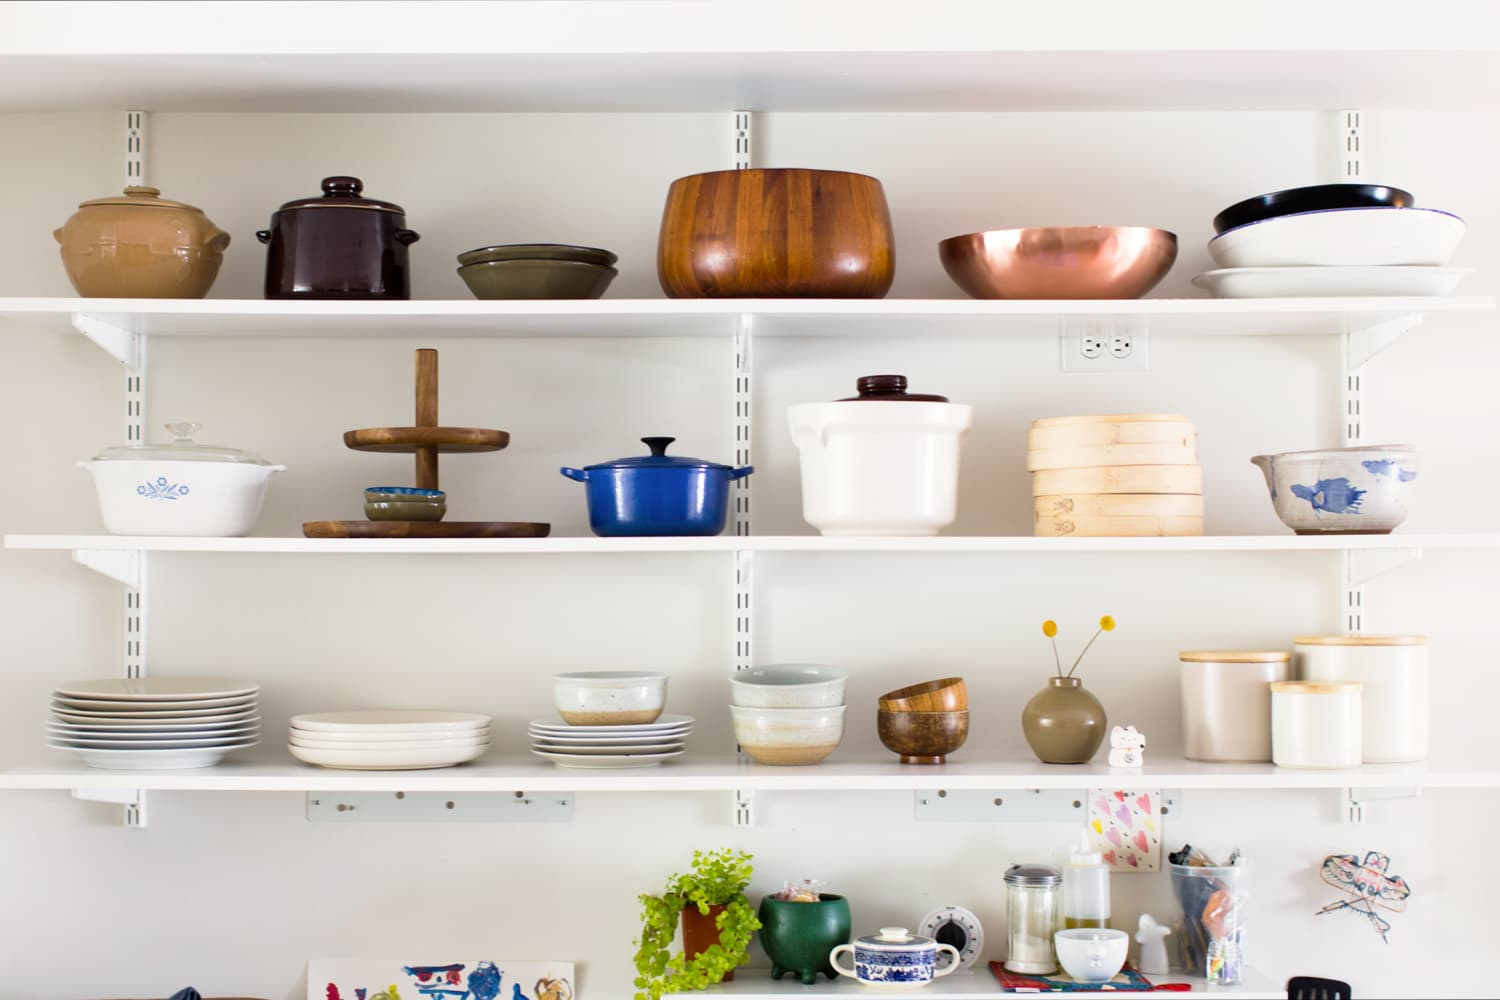 10 of the Best Decluttering Tips and Tricks from 2018